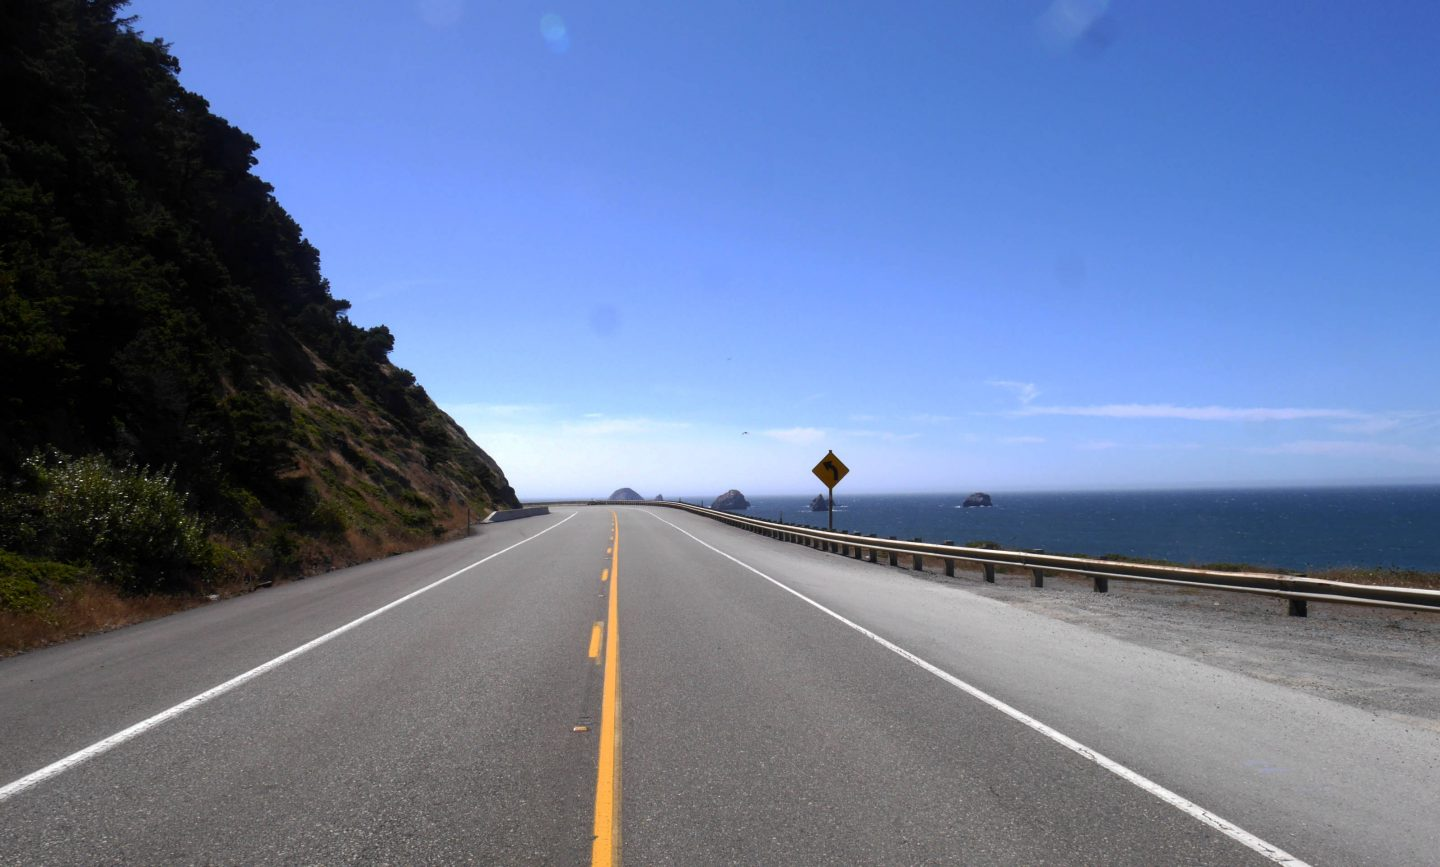 Highway 101 – from the Sand Dunes to the Redwoods